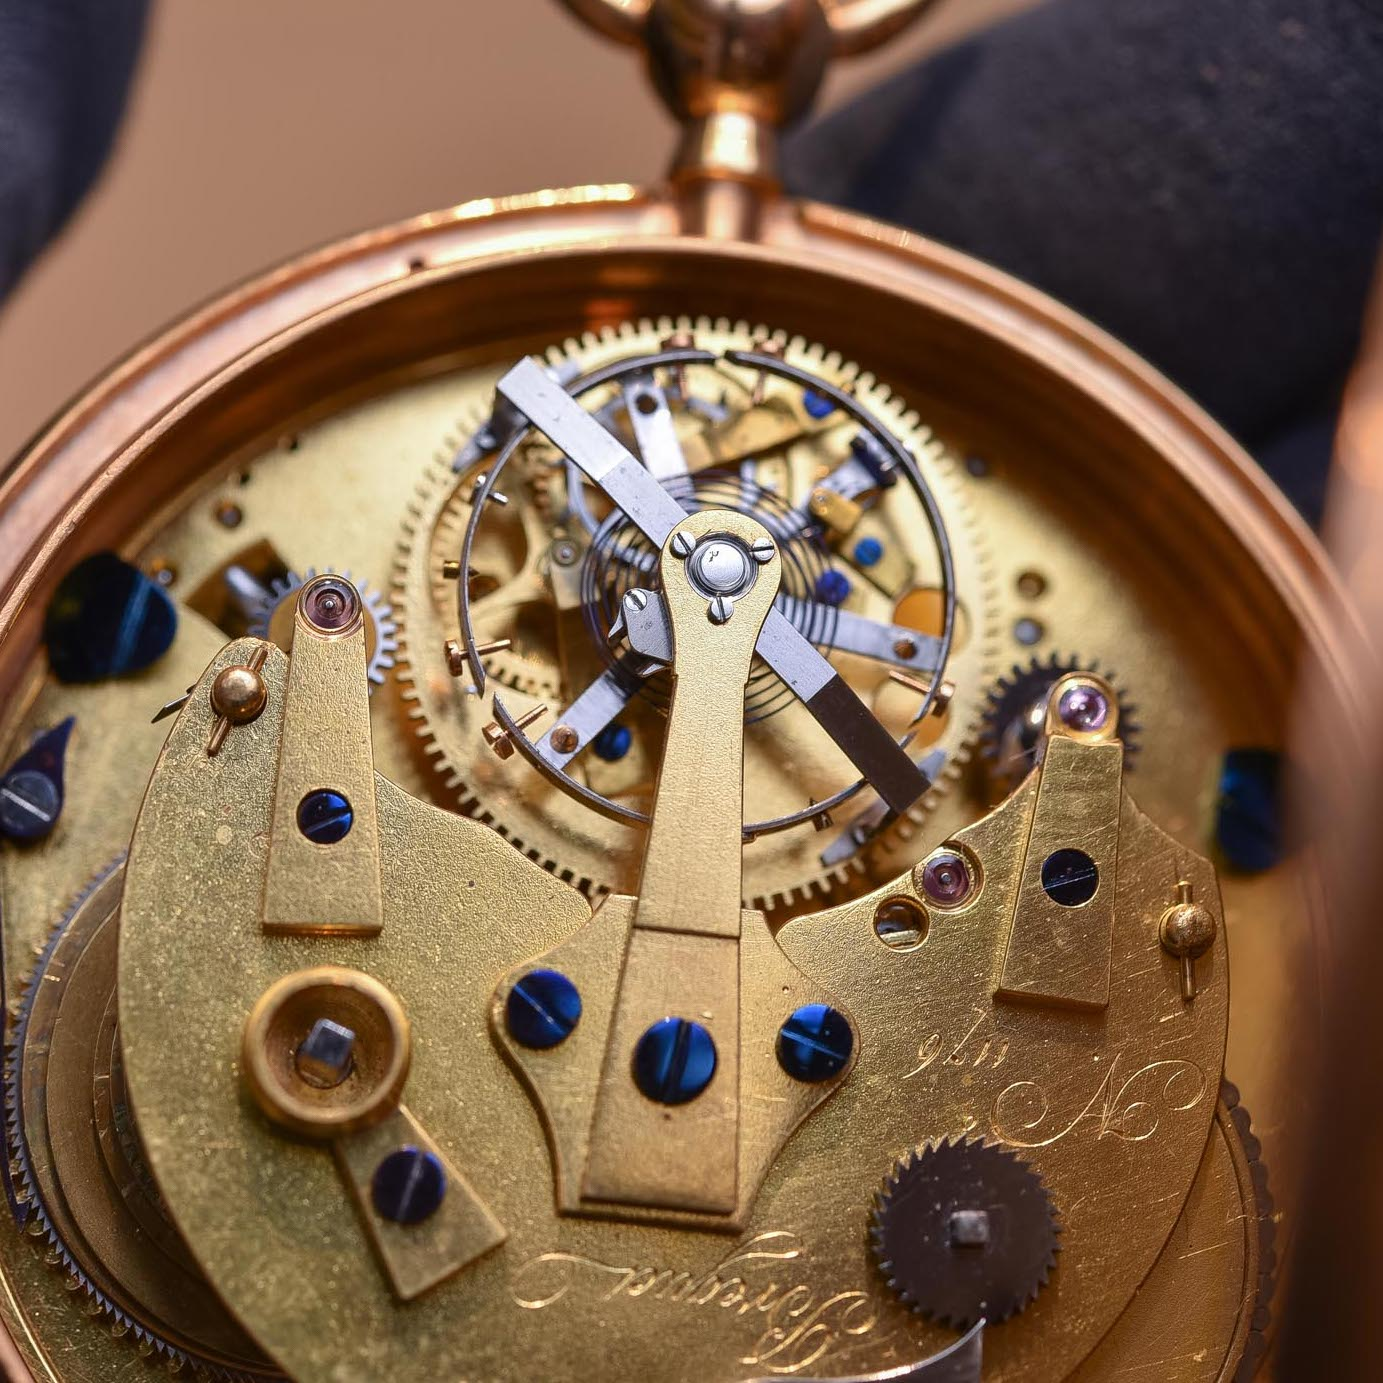 Breguet-Tourbillon-pocket-watch-No-1176-5